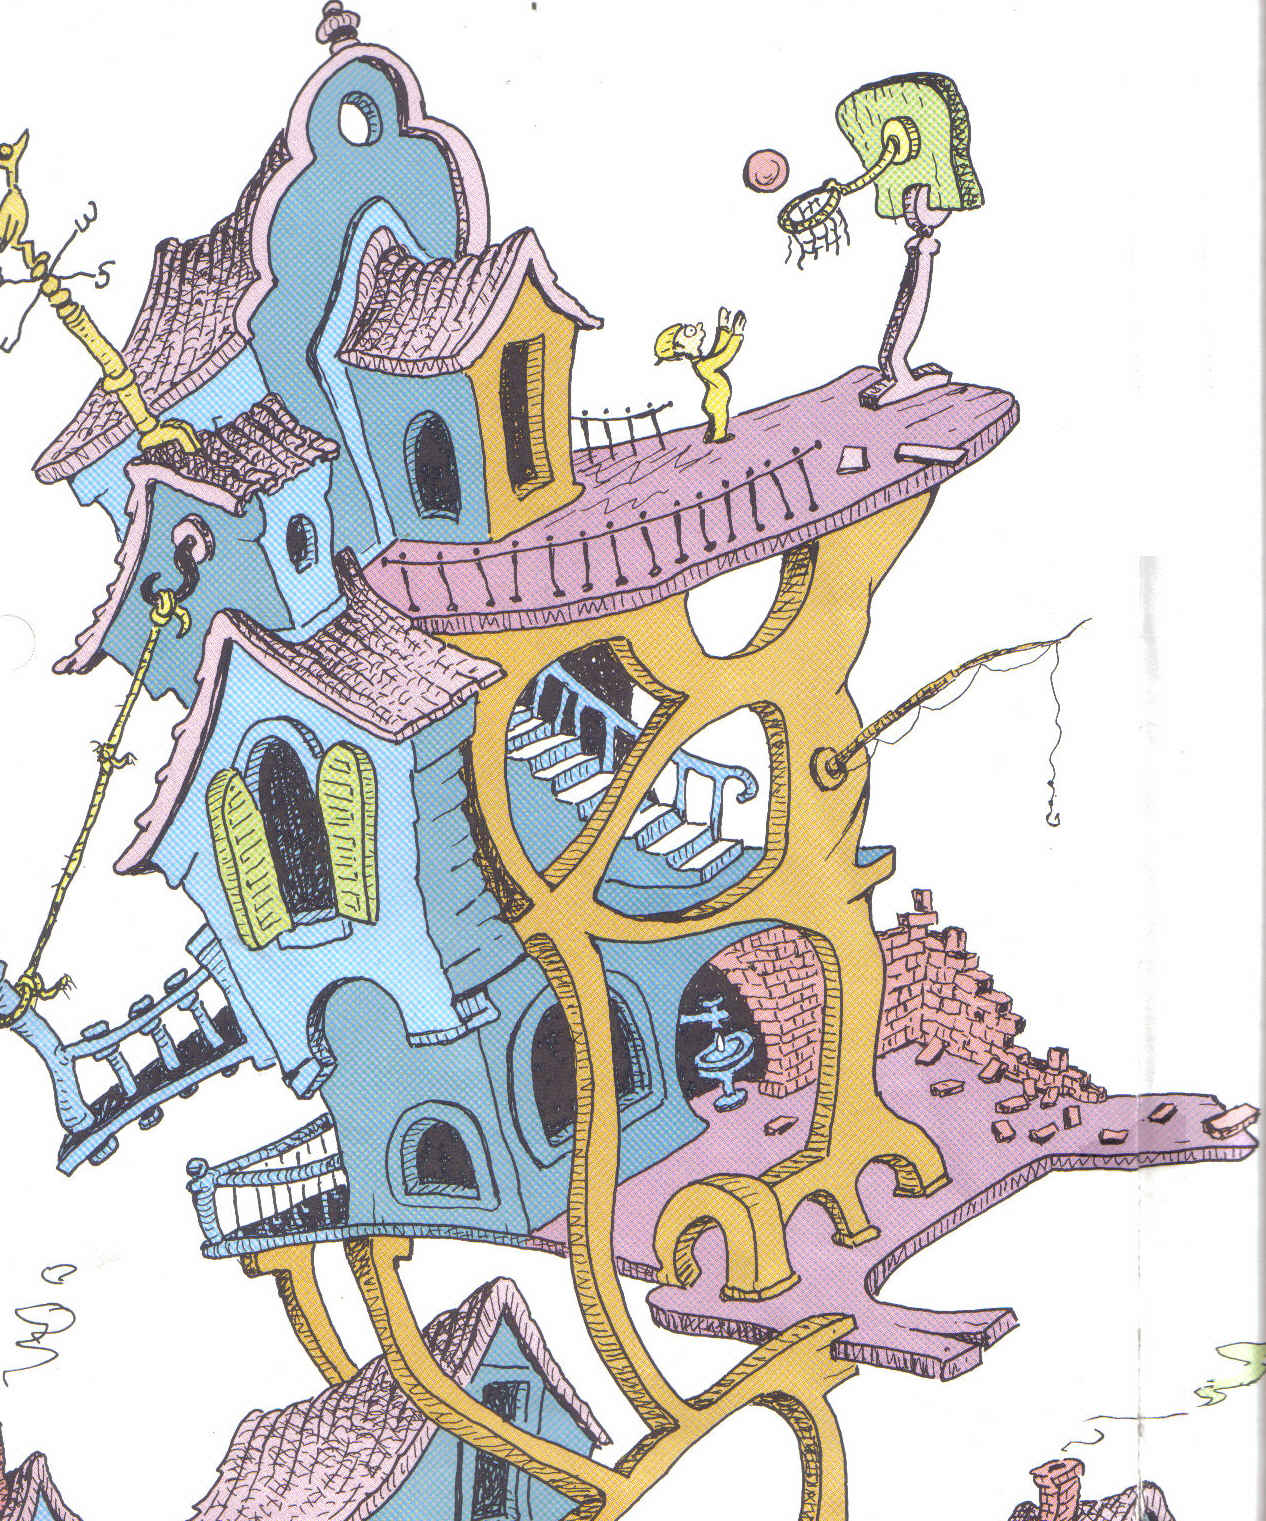 Image - Dr seuss house.jpg | Dr. Seuss Wiki | FANDOM powered by Wikia